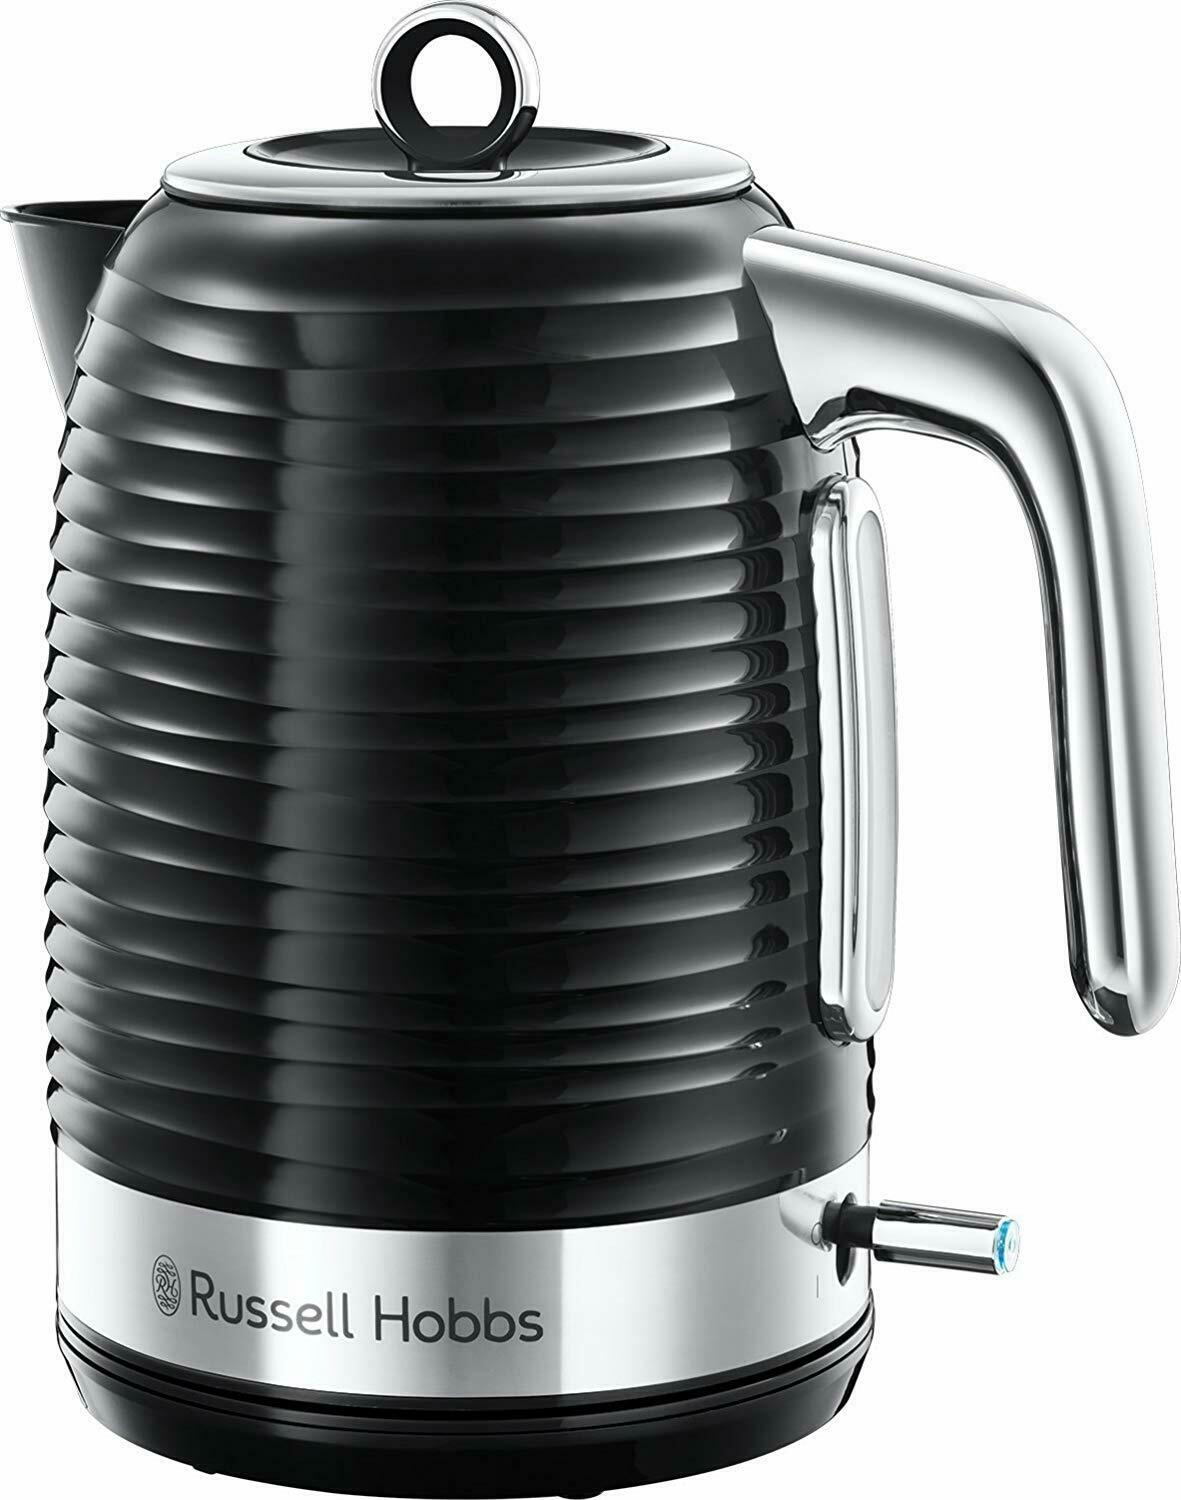 Russell Hobbs 21882 Legacy Kettle Cream